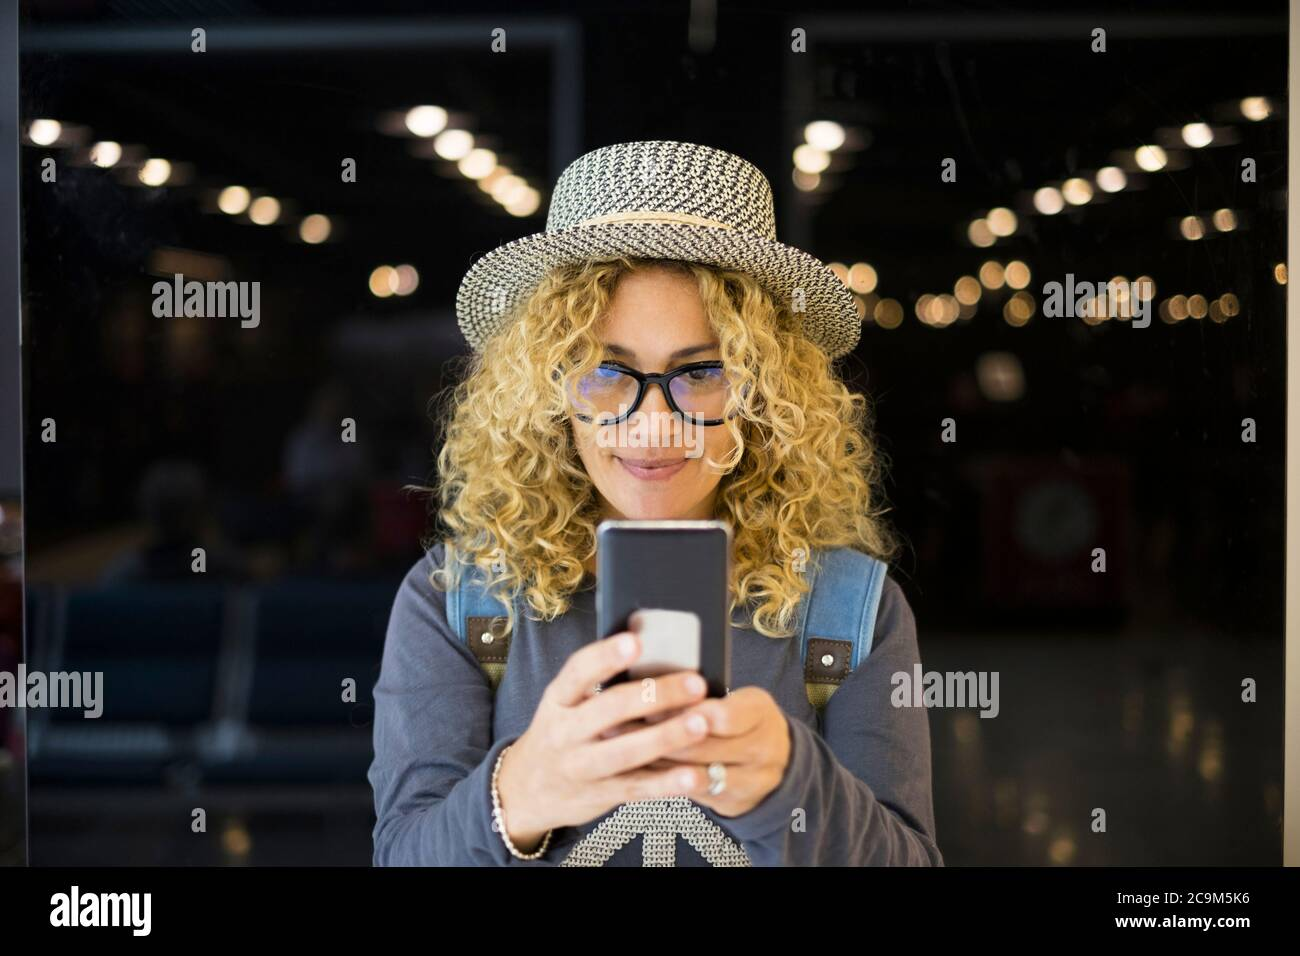 portrait and close up of beautiful curly and blonde woman looking at the camera smiling - happy people traveling at the airport - vacations outdoors Stock Photo